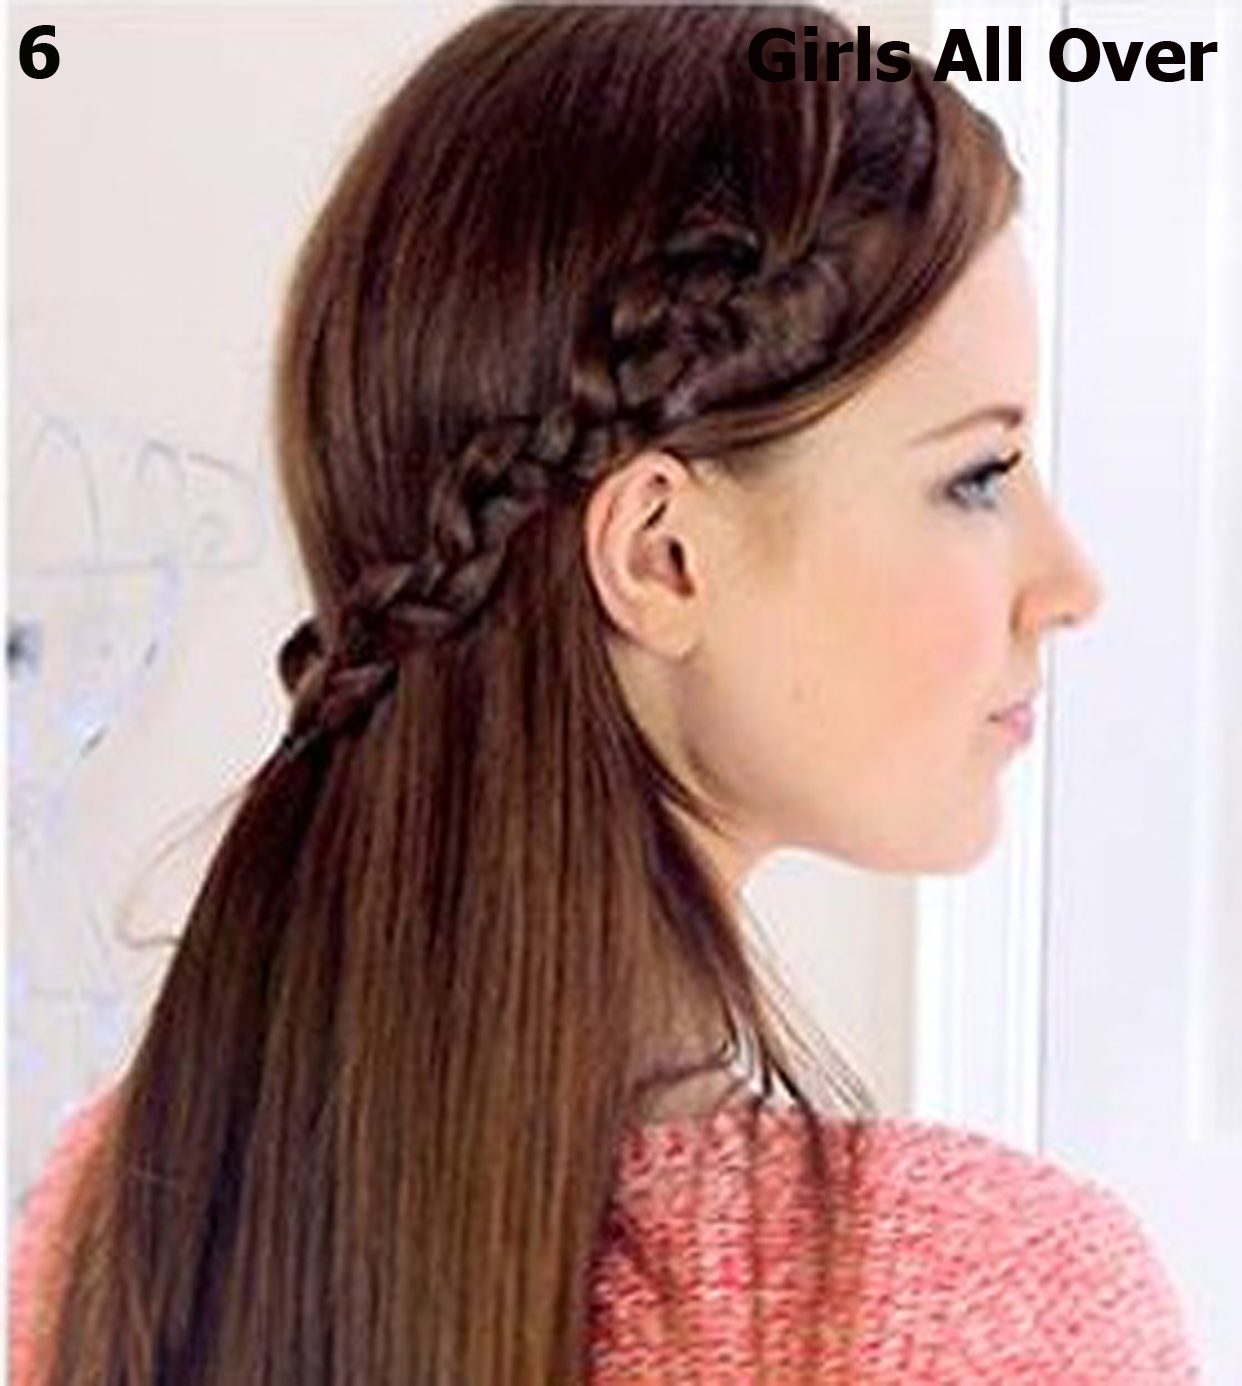 Hairstyles Video Download : Now i am going to explain it to you step by step.